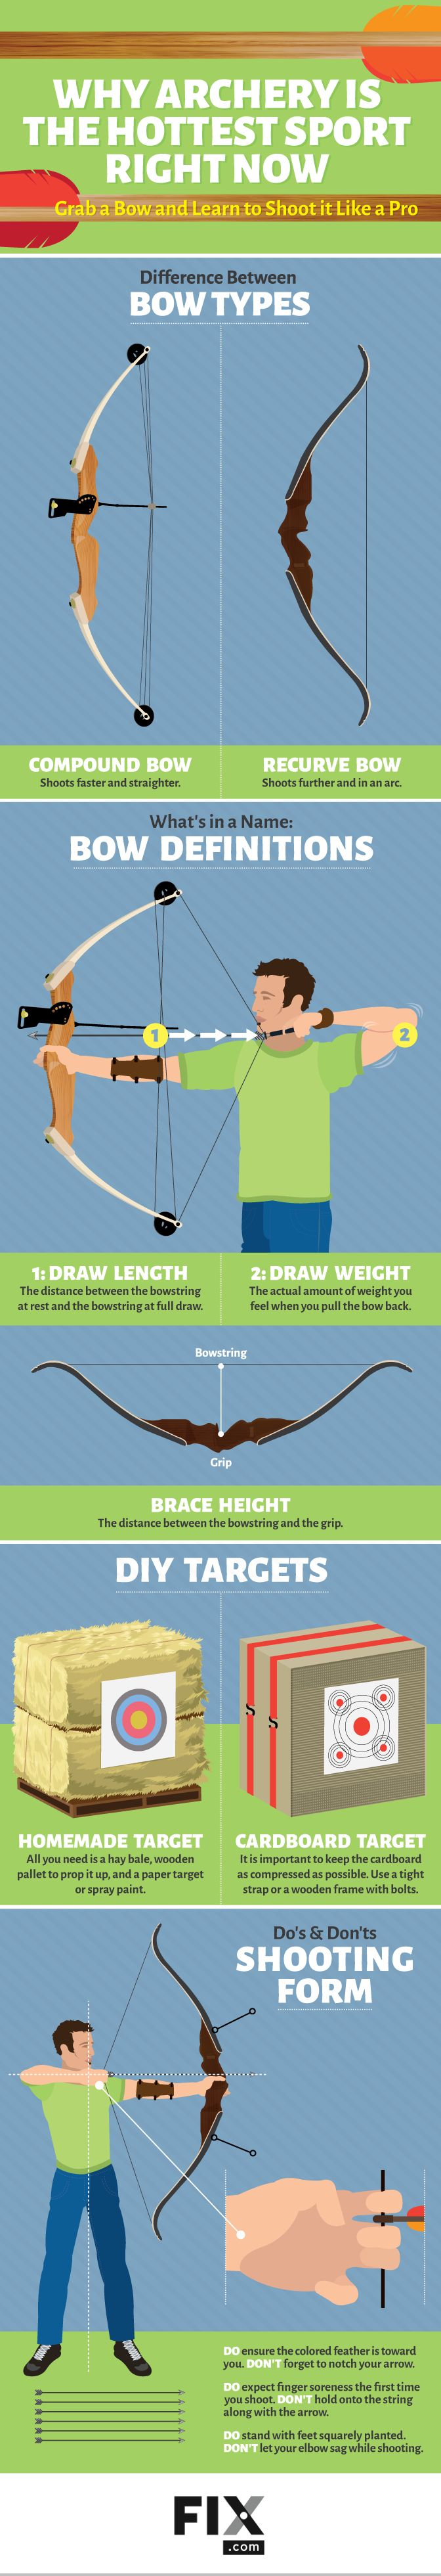 12 best bow images on pinterest archery archery hunting and